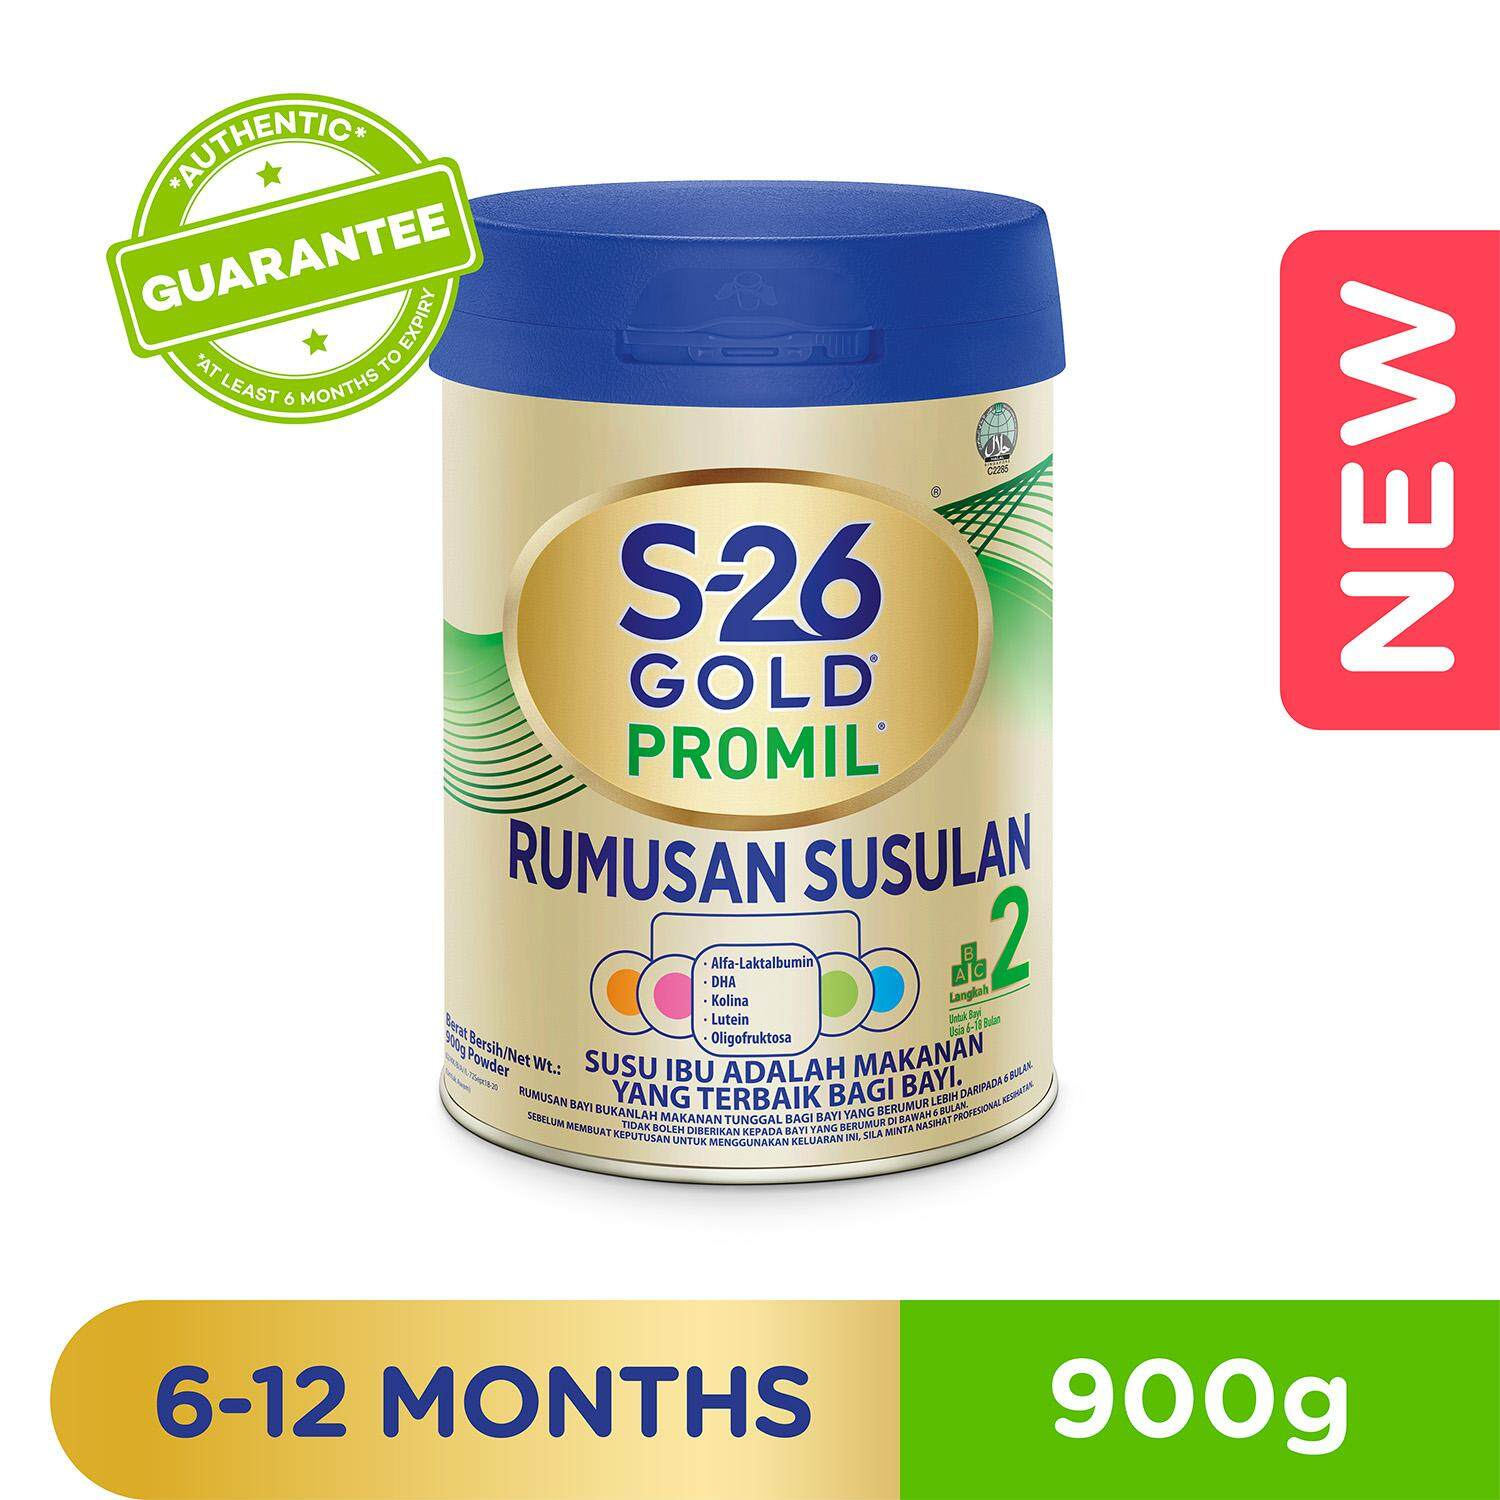 S-26 Gold Promil 900g (upgraded Formula) By Lazada Retail S26.